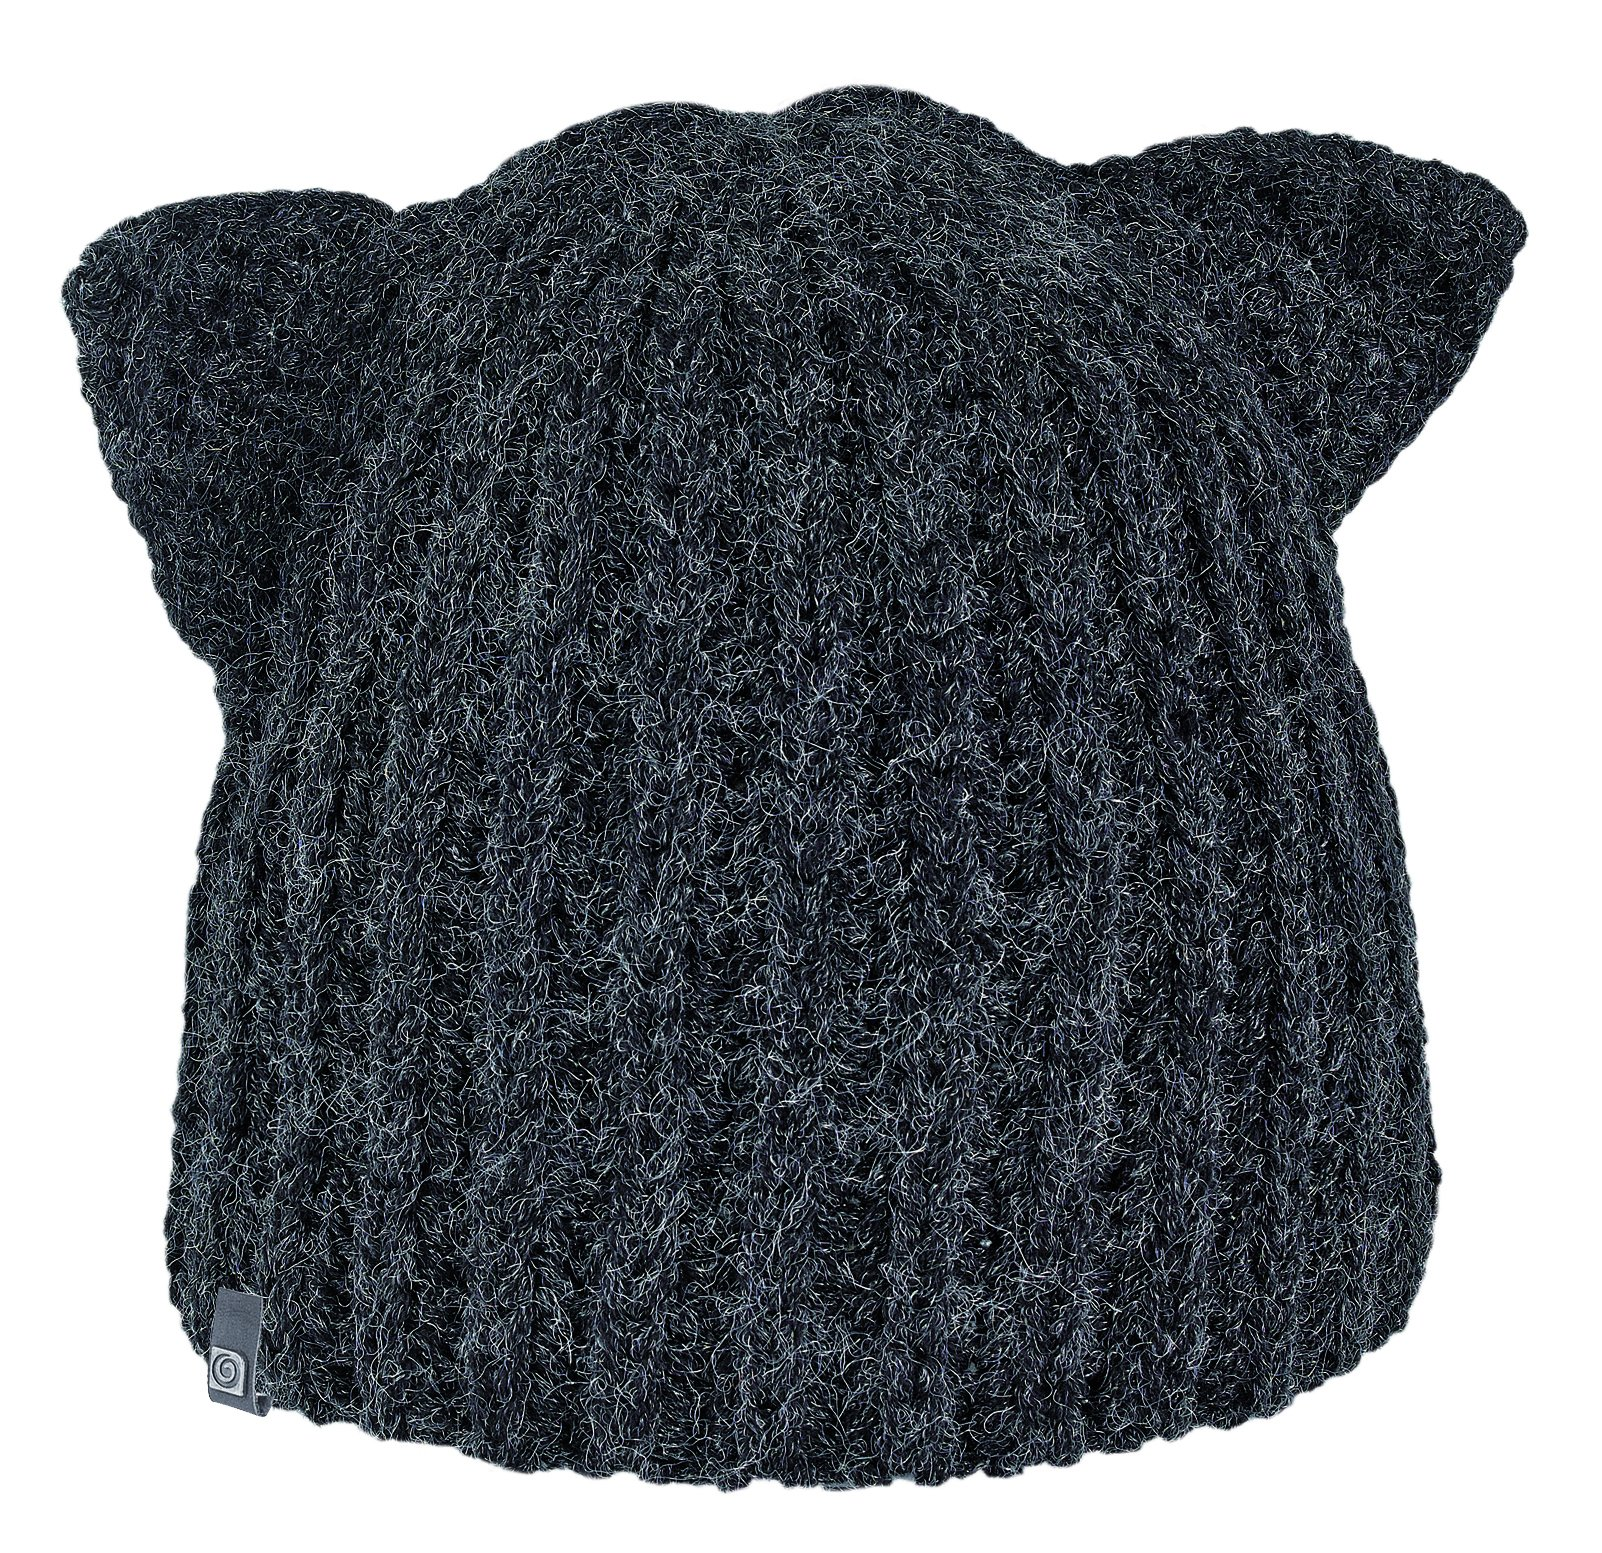 2016/17 Brekka Party Beanie Black